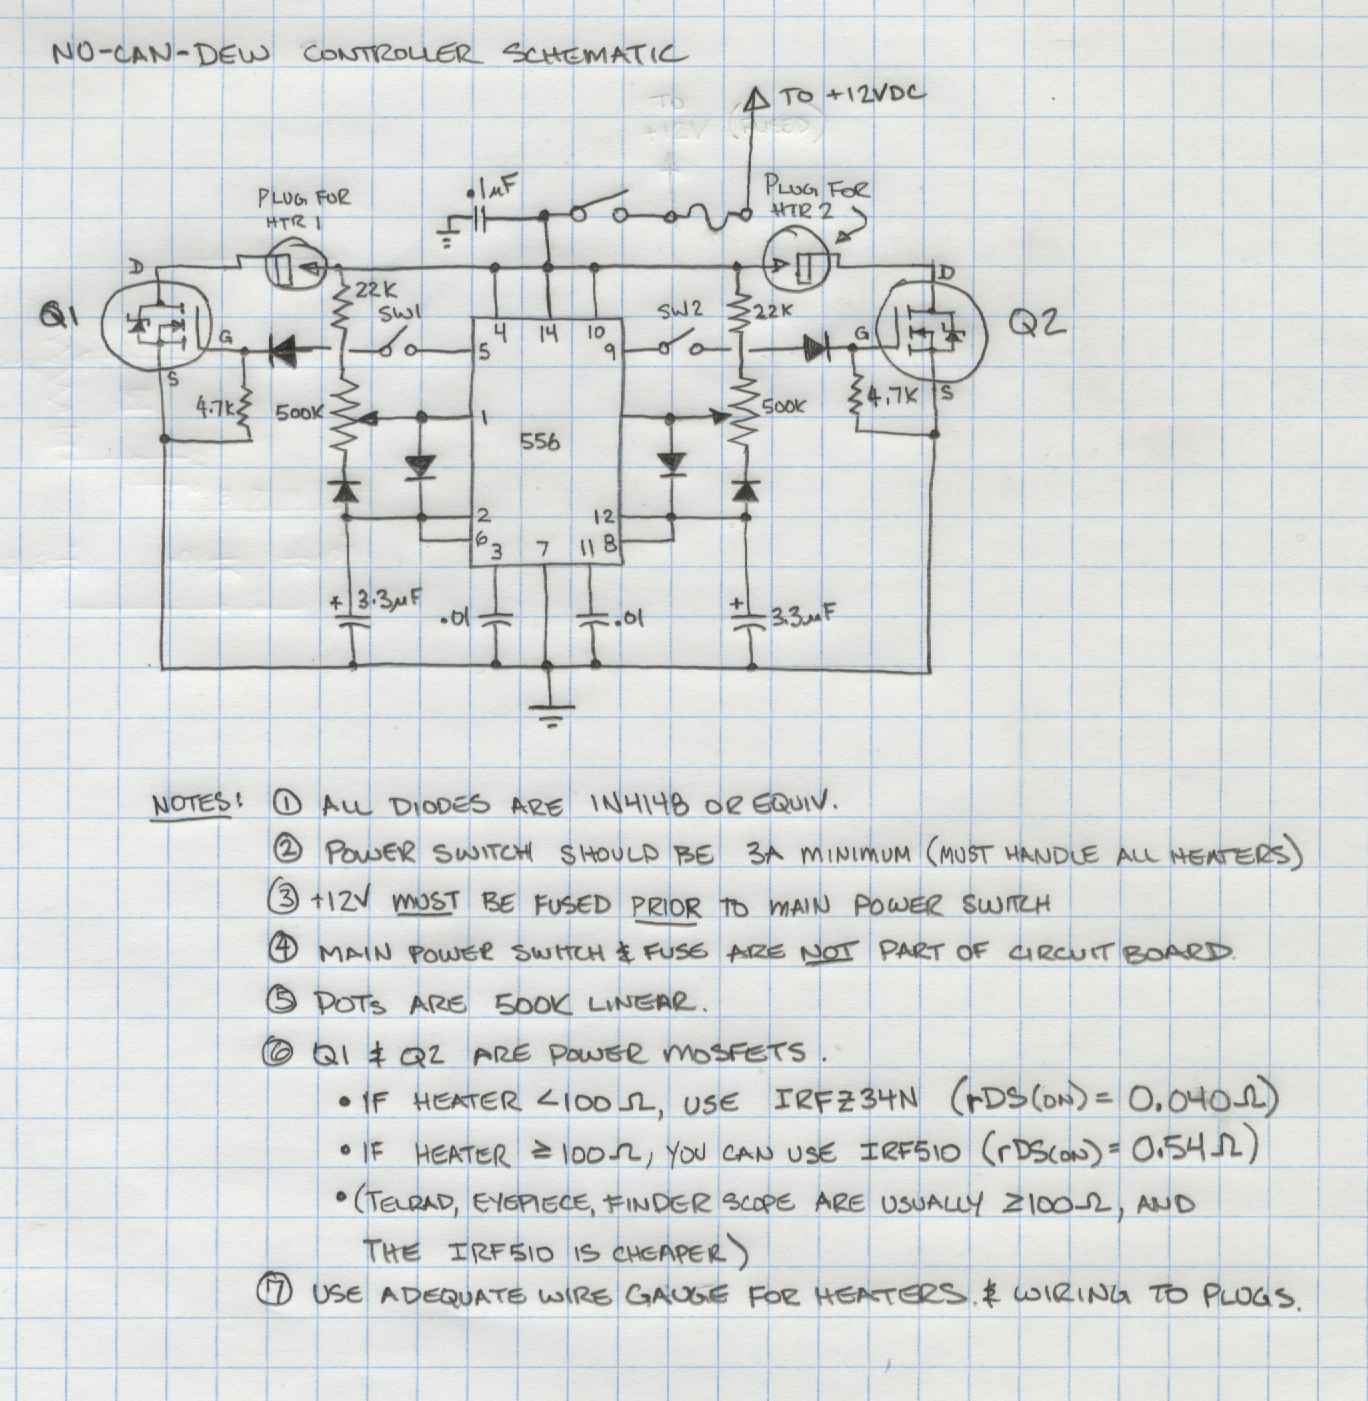 Dimarzio Humbucker Single Pickup Wiring Diagram Auto Electrical As Well Gfs